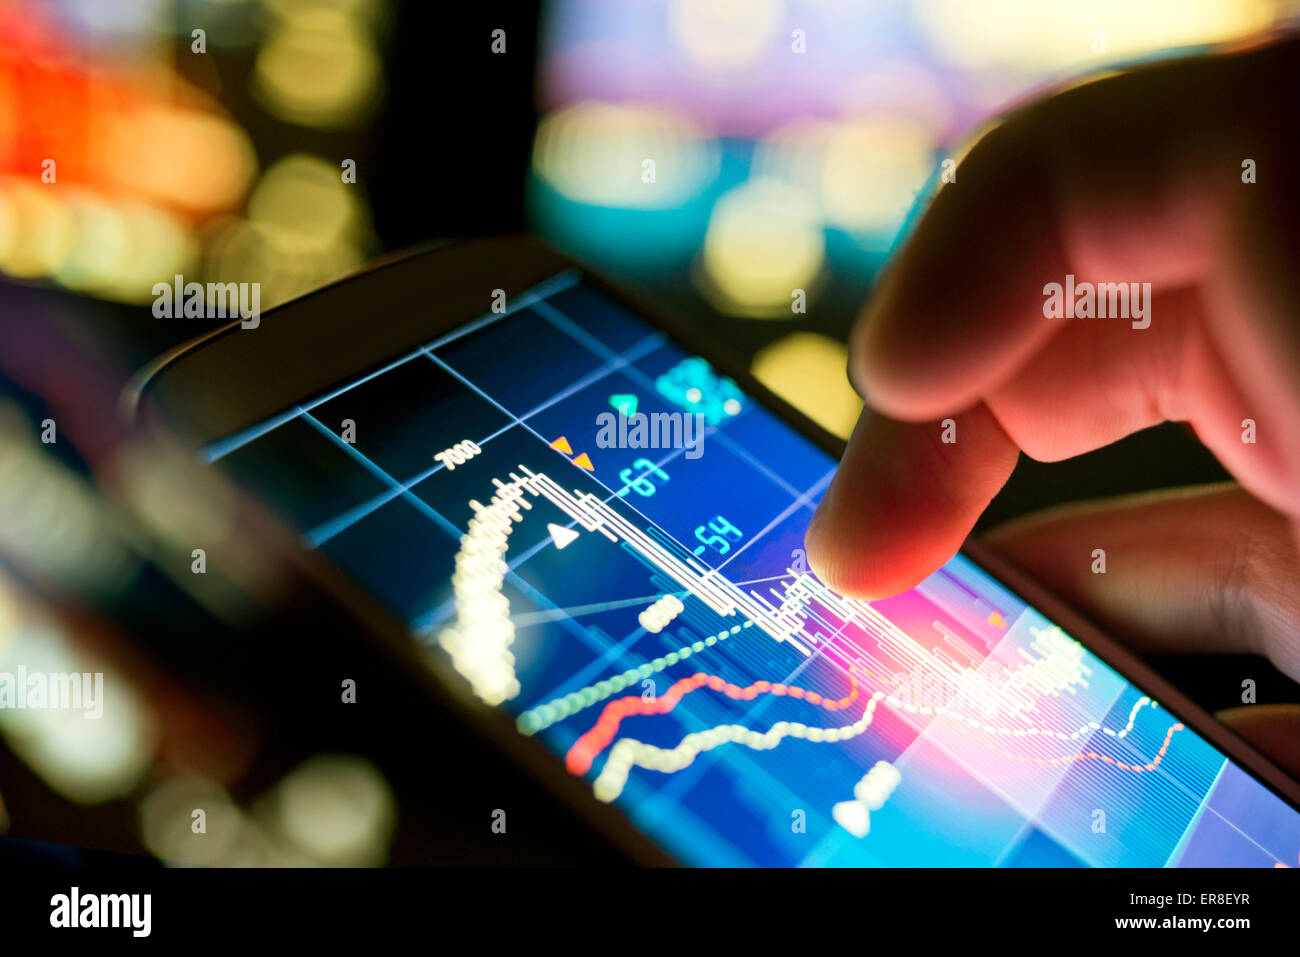 A businessman using a mobile phone to check stock market data. - Stock Image